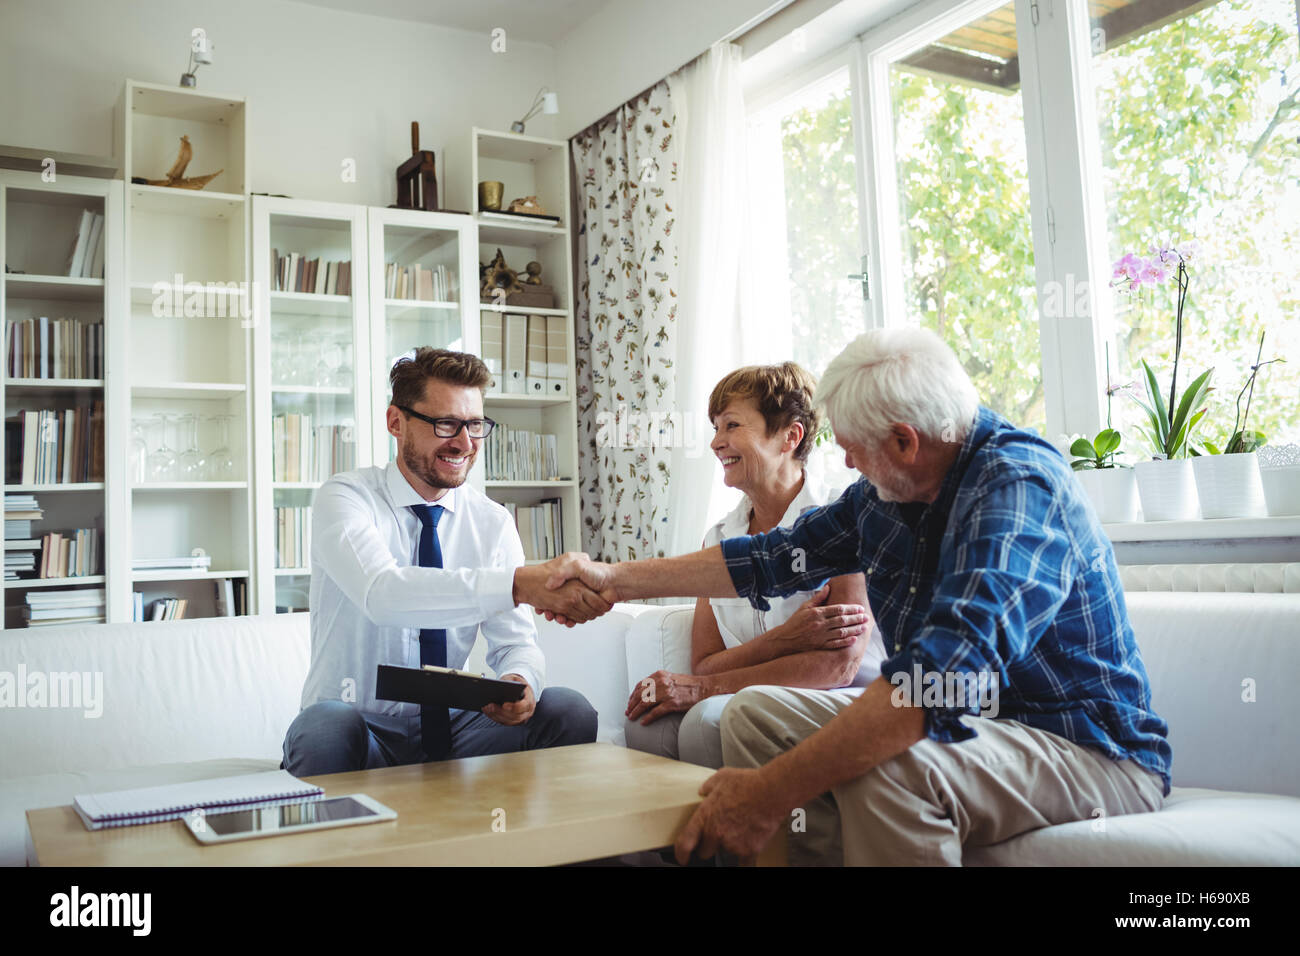 Financial advisor shaking hands with senior man - Stock Image